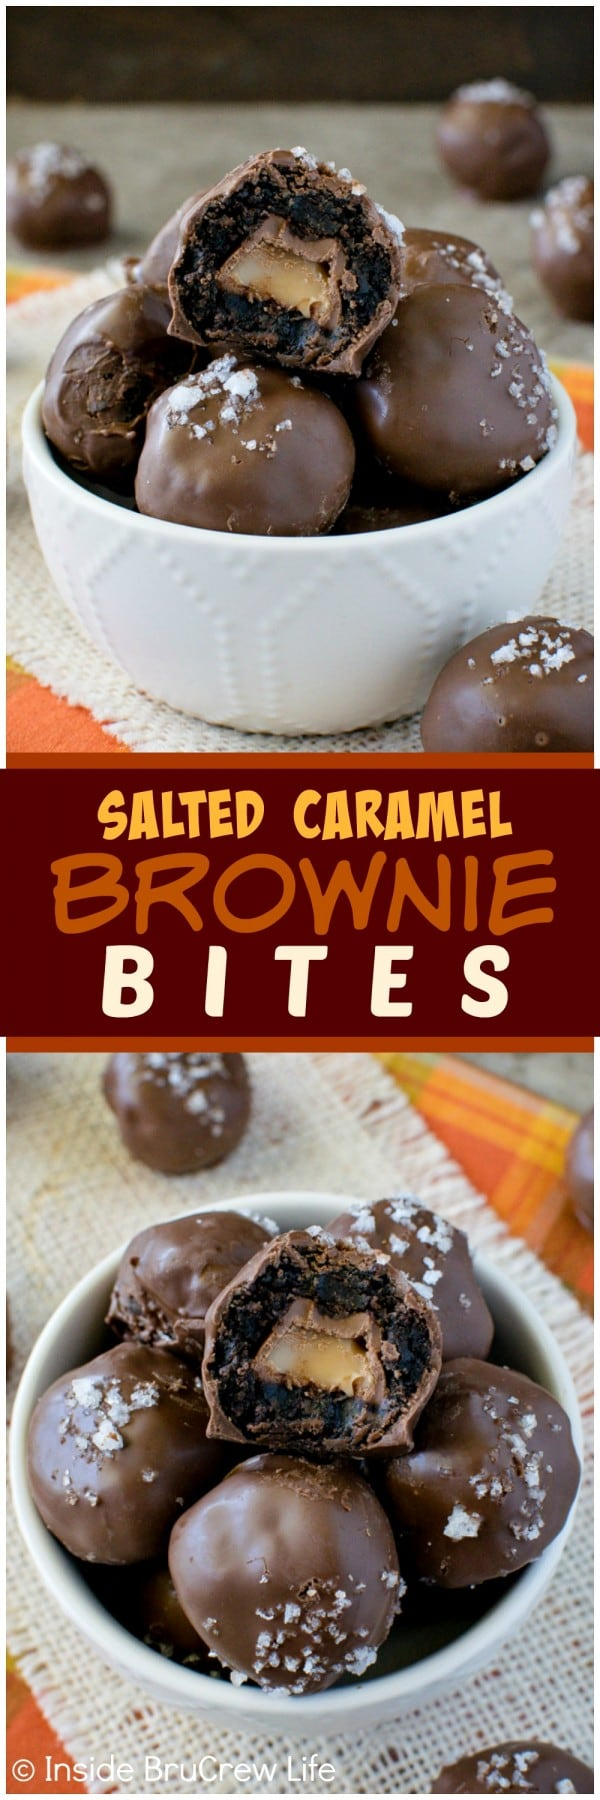 Salted Caramel Brownie Bites - hiding caramel candies inside brownie bites makes these treats disappear in a hurry. Great dessert recipe for parties or gifts! #sweetandsalty #browniebites #caramel #saltedcaramel #chocolate